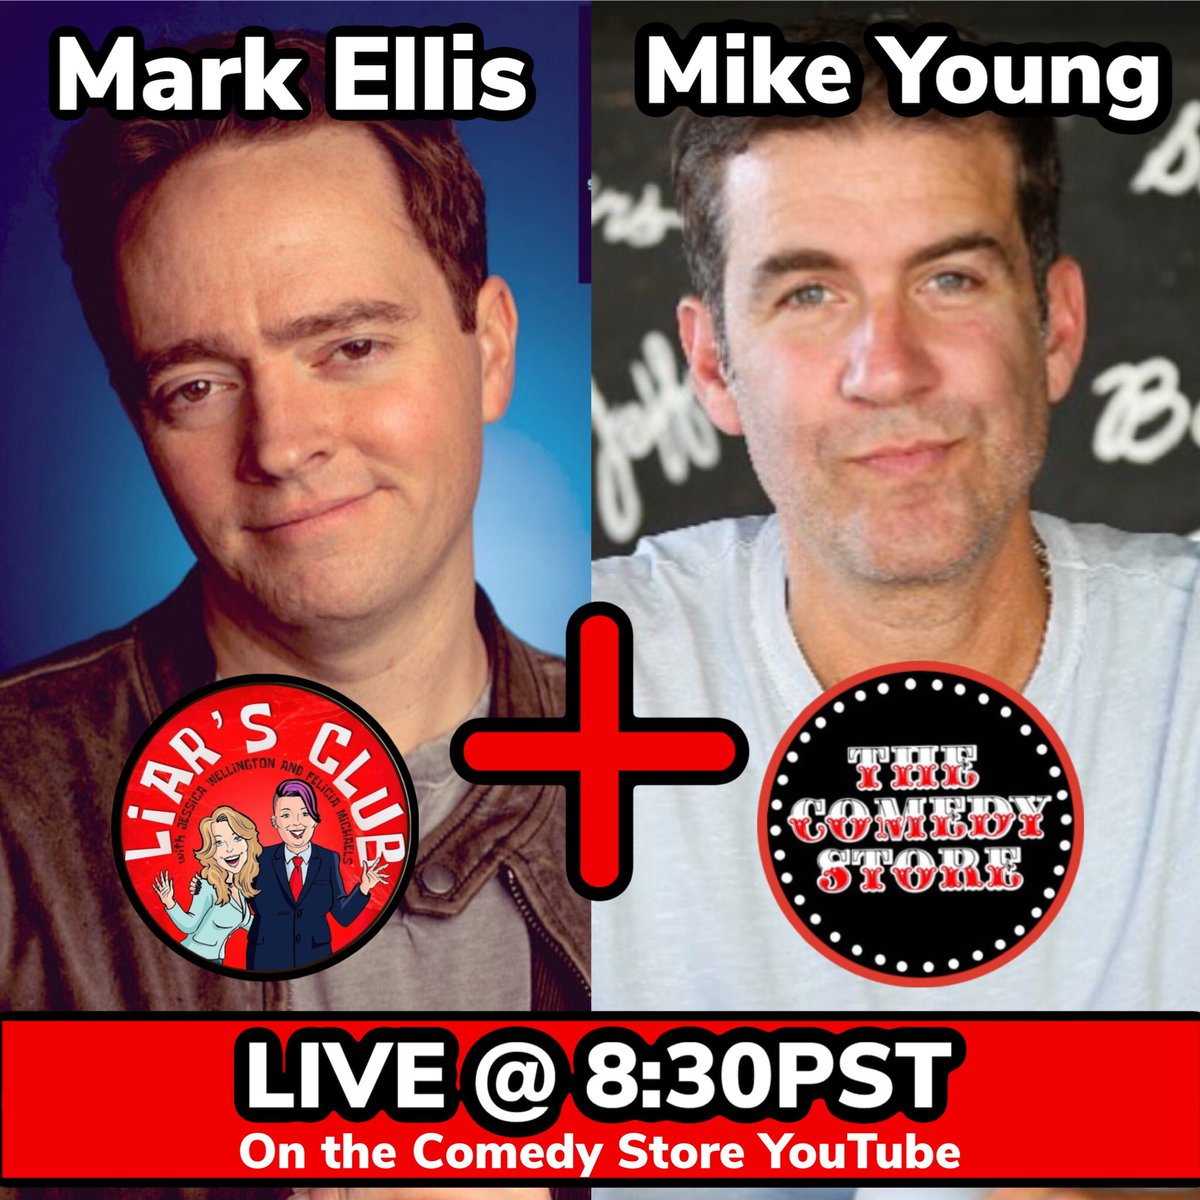 Back to our regular schedule tonight! Going live on @TheComedyStore YouTube at 8:30PST with guests @markellislive and @realmikeyoung  Play along with us live! #liarsclub #podcast #comedystore #youtube #markellis #mikeyoung #youtubelive